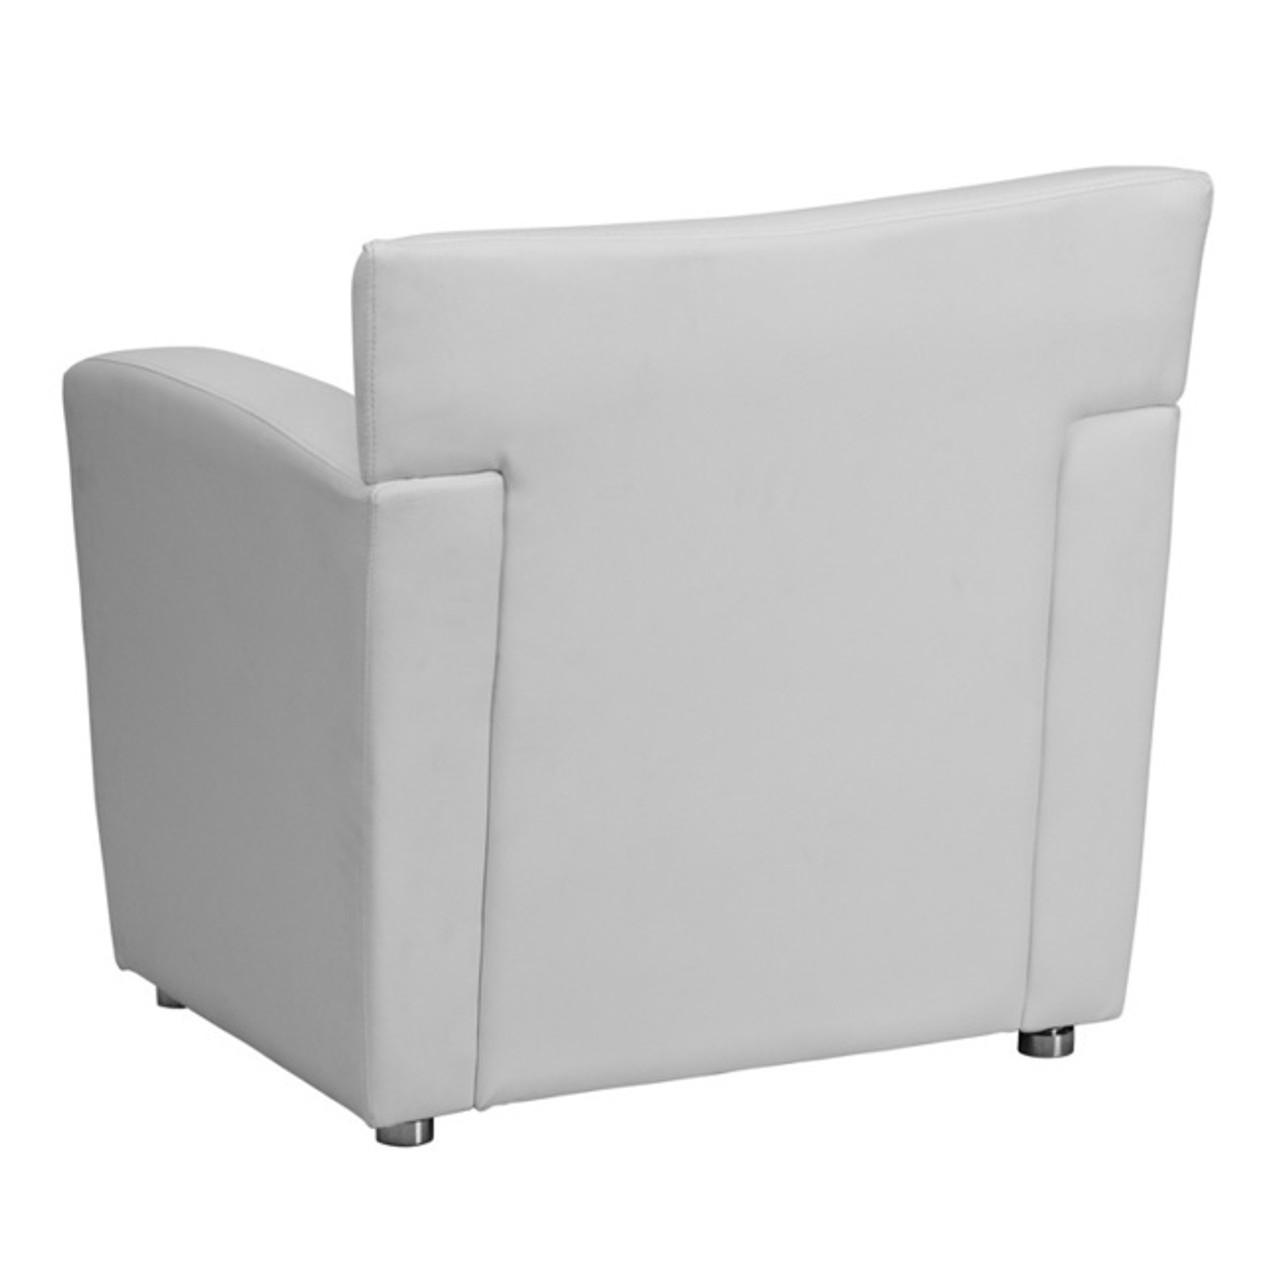 1pc Modern Leather Office Reception Chair, FF-0548-13